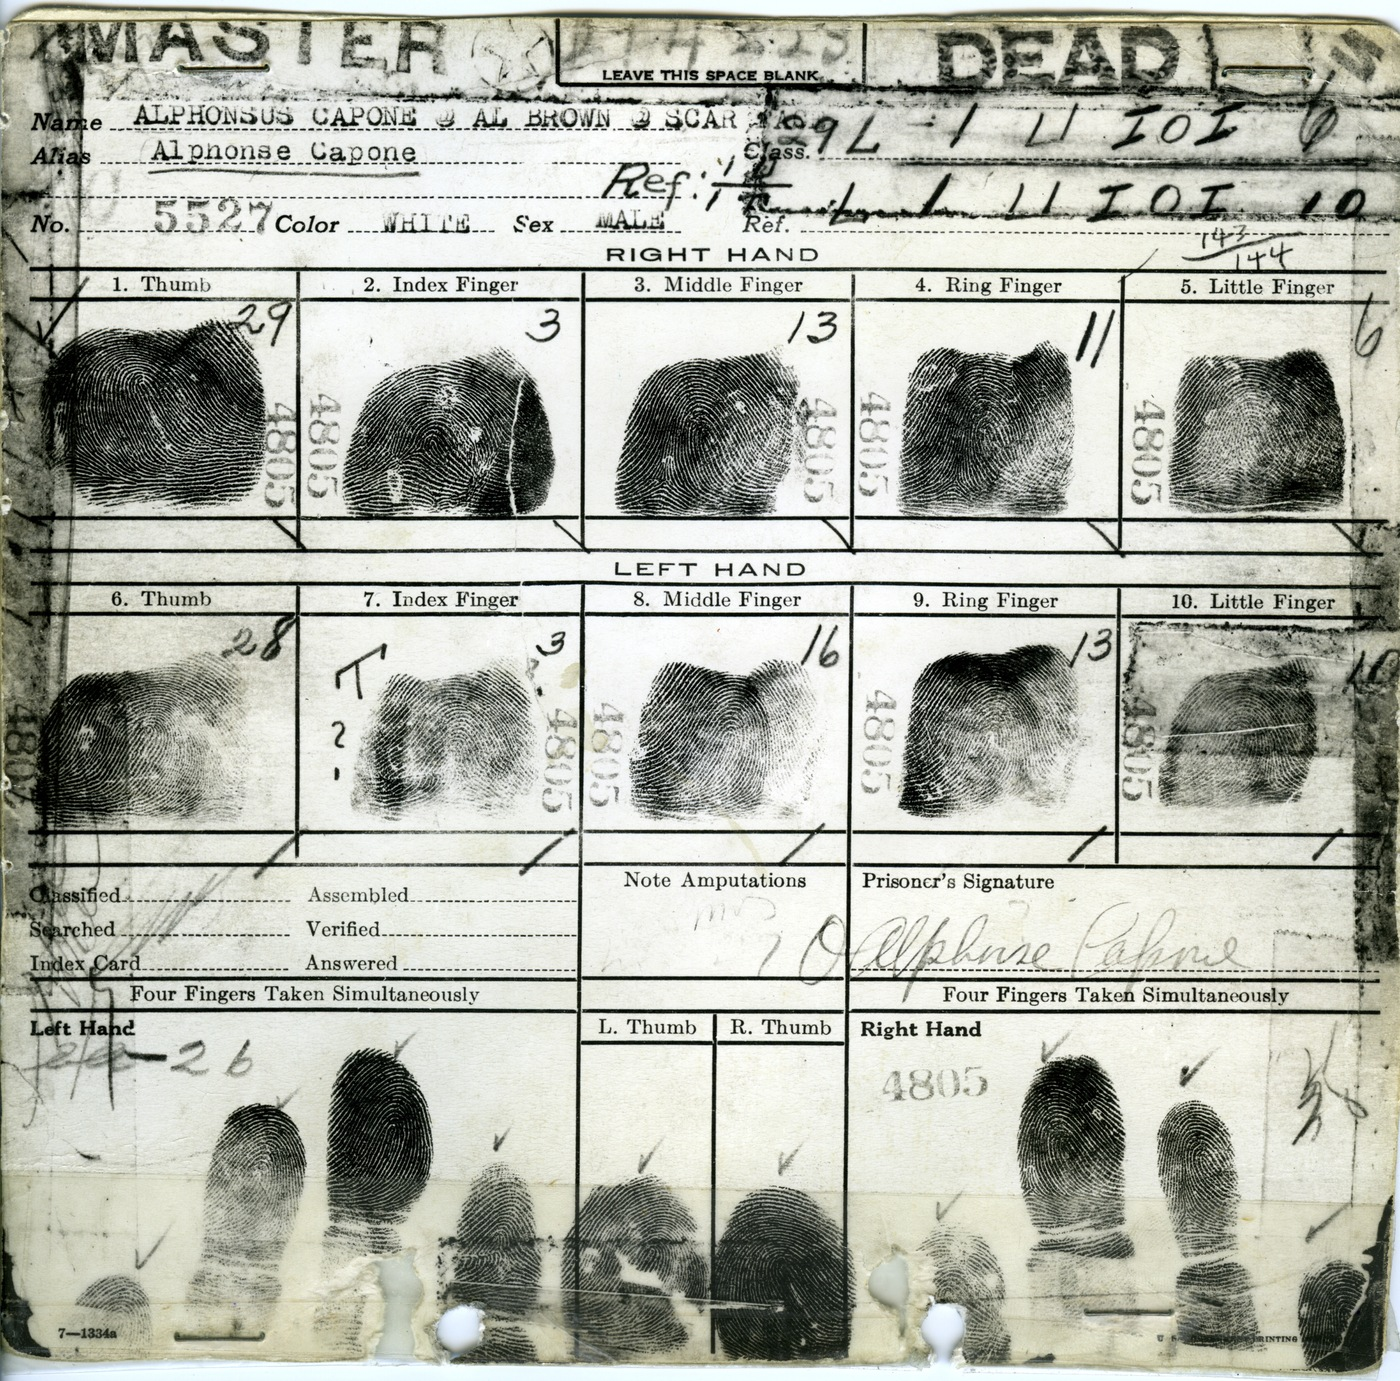 Al Capone's fingerprint card.